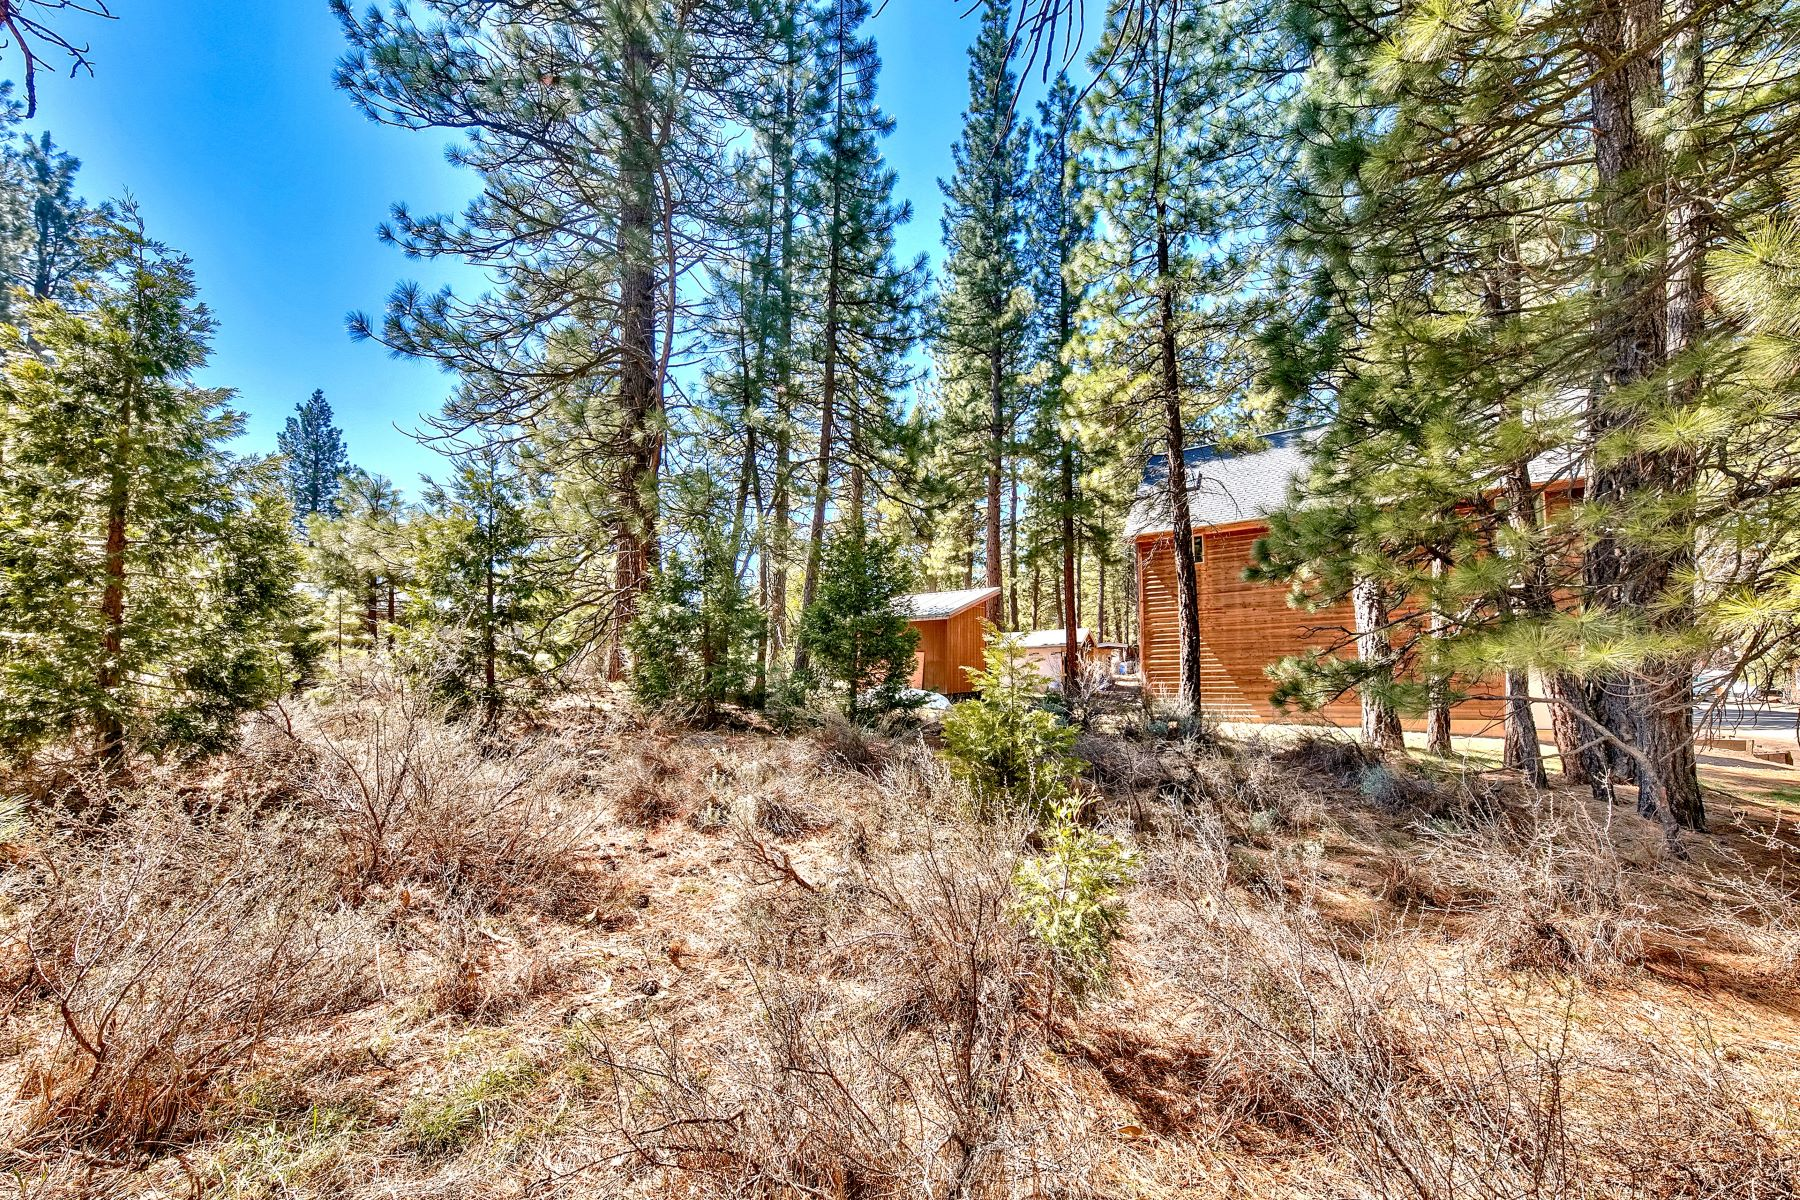 Additional photo for property listing at Affordable lot in Calpine 117 Calpine Avenue Calpine, California 96124 Estados Unidos